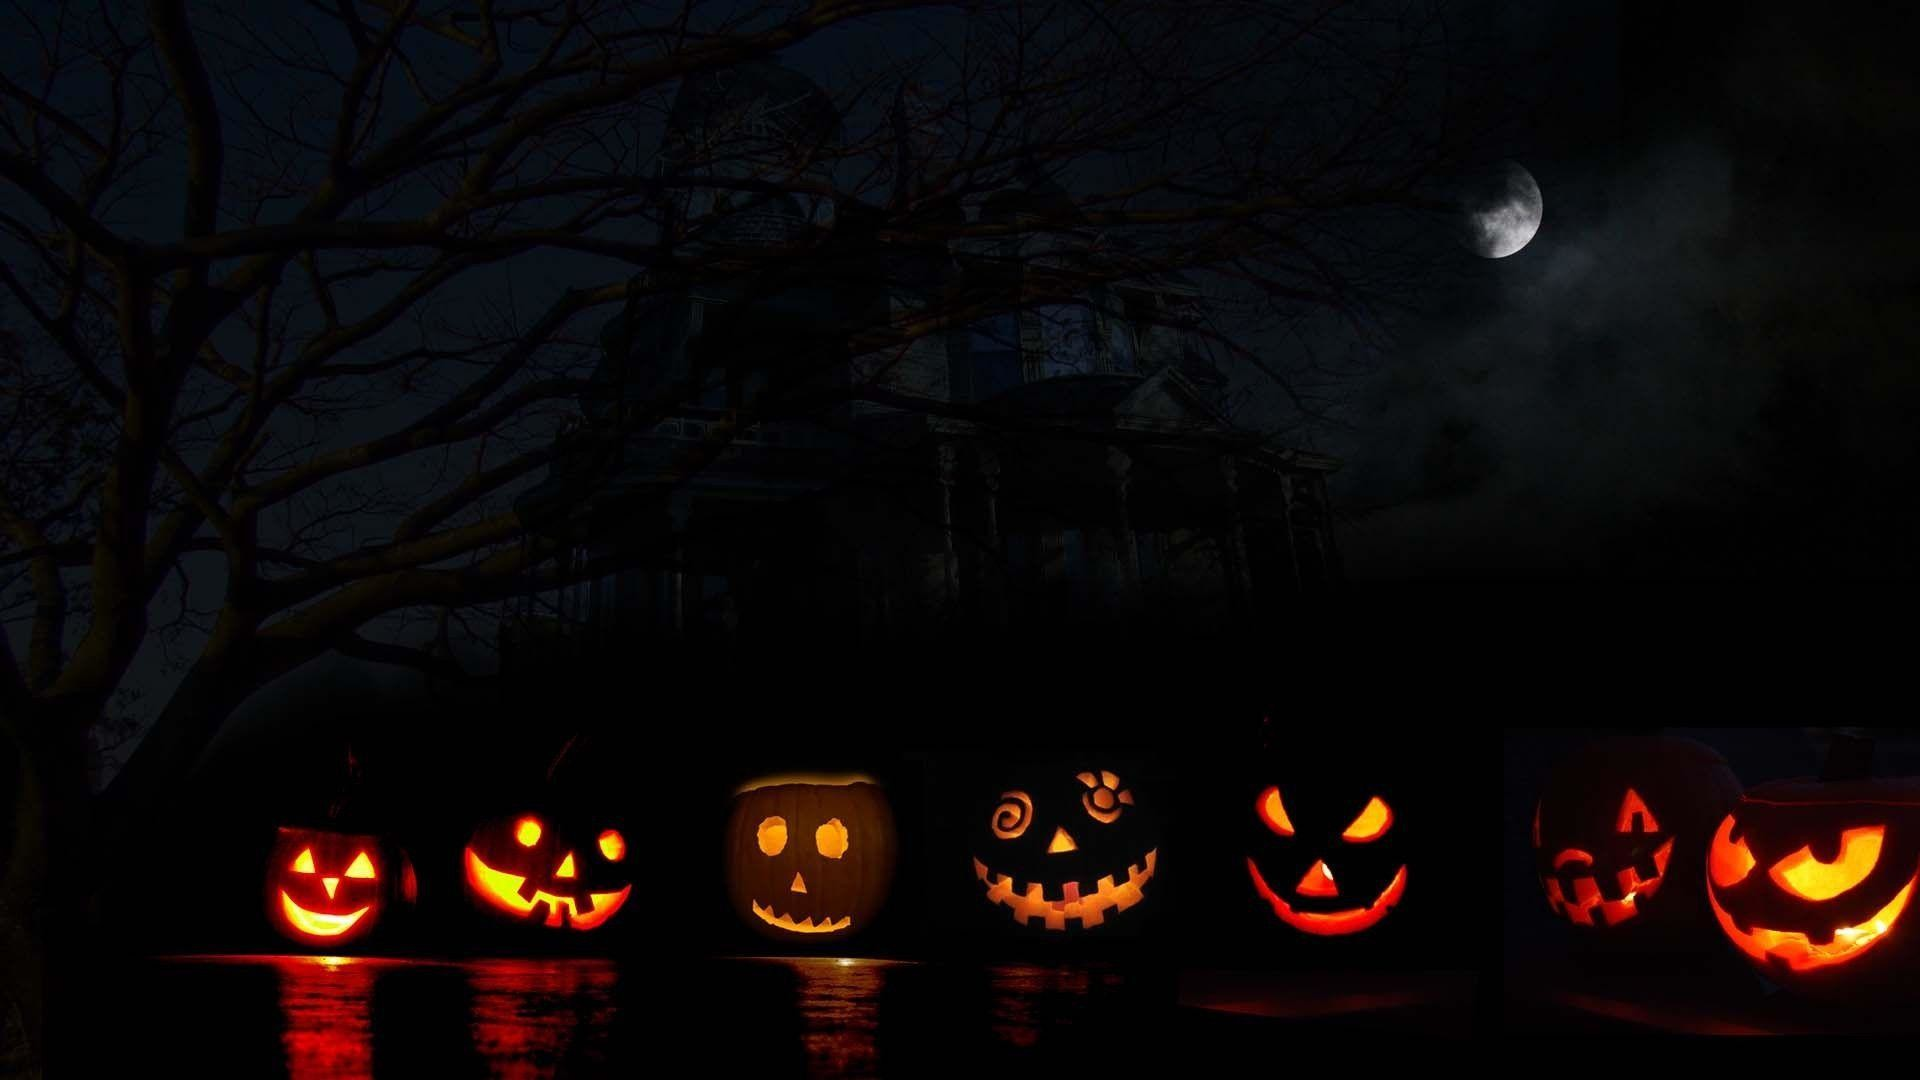 Halloween Computer Wallpaper Widescreen   Picseriocom 1920x1080